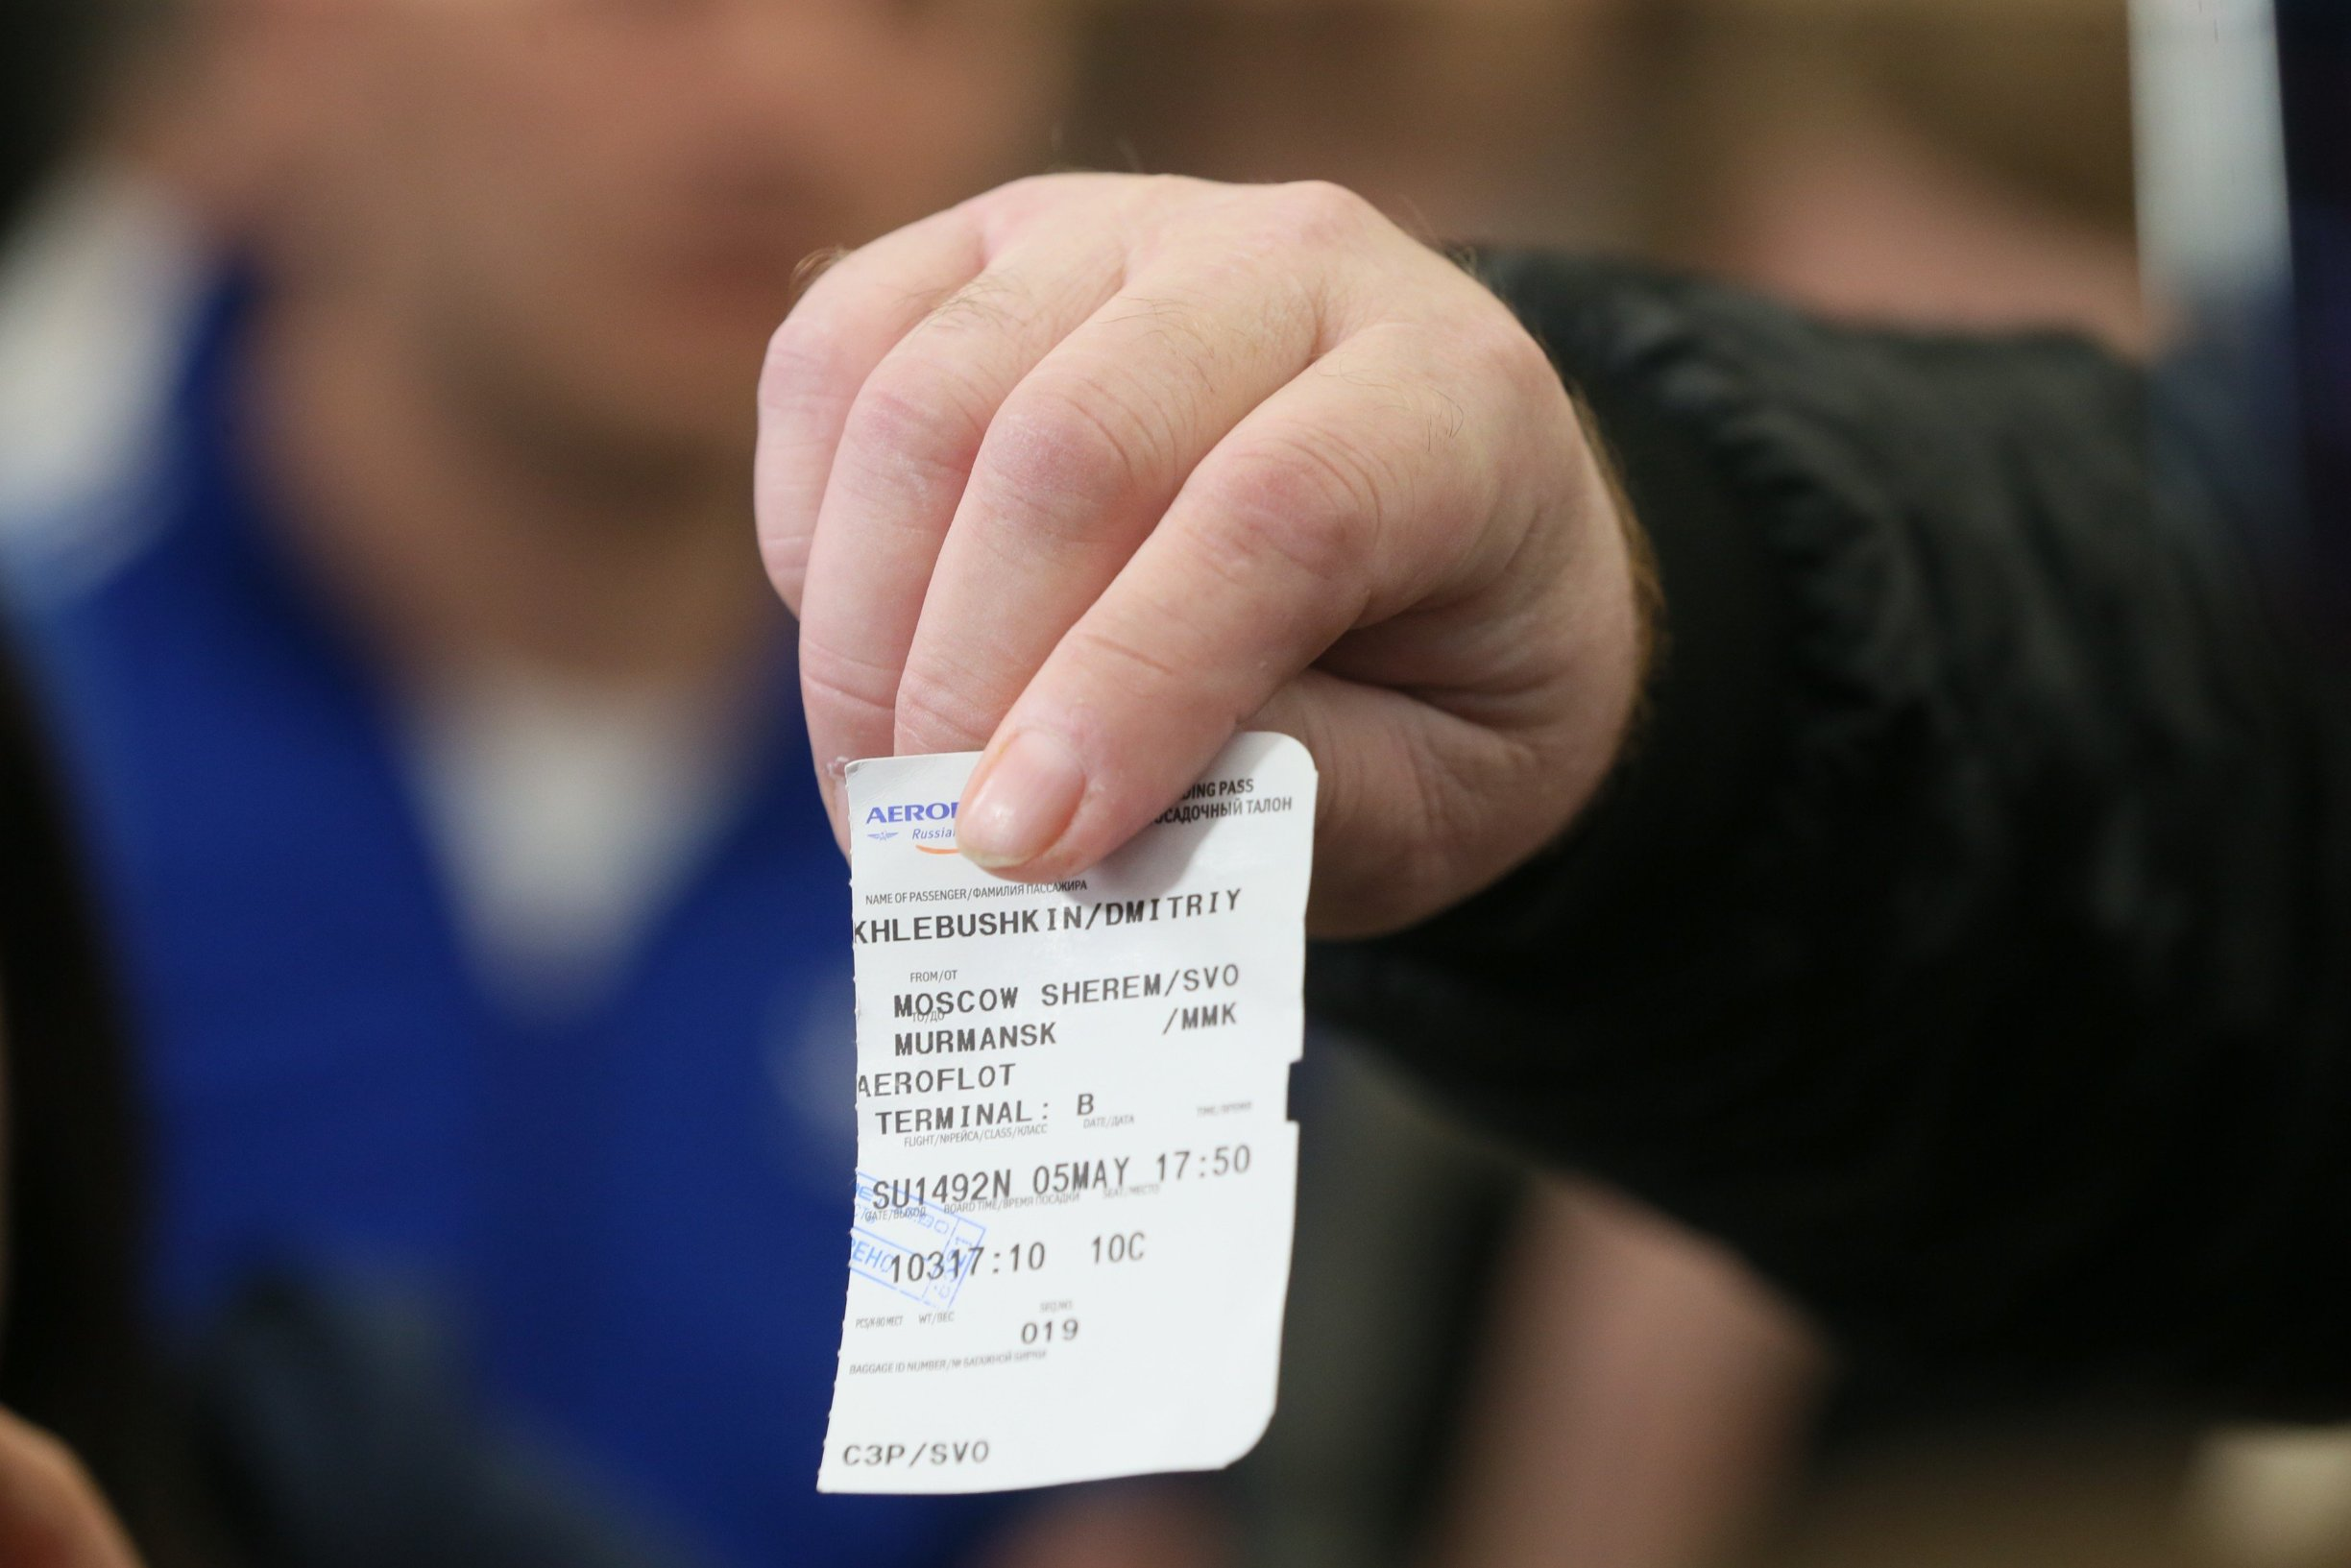 MOSCOW REGION, RUSSIA - MAY 5, 2019: Dmitry Khlebushkin, one of the survivors of Aeroflot Flight RA-89098 to Murmansk, shows his ticket as he speaks at Sheremetyevo Airport after the crash landing; the Aeroflot Sukhoi Superjet-100 (SSJ100) passenger aircraft left Sheremetyevo for Murmansk as around 6pm Moscow time, returned and made an emergency landing at around 6.40pm Moscow time; the crashlanding and the fire aboard the aircraft have resulted in casualties. Vladimir Gerdo/TASS, Image: 431023083, License: Rights-managed, Restrictions: , Model Release: no, Credit line: Profimedia, TASS